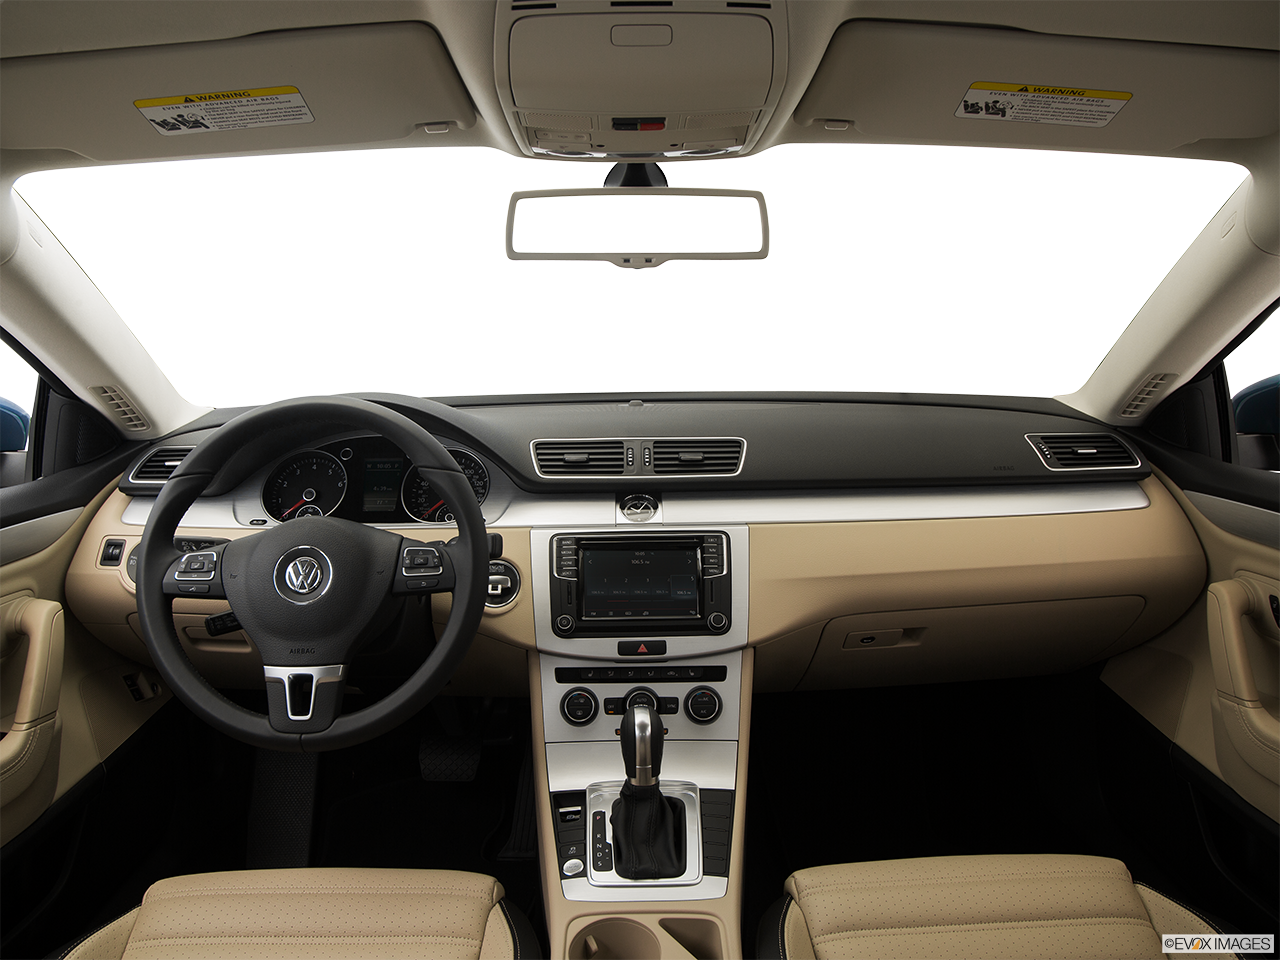 Interior View Of 2016 Volkswagen CC in San Diego